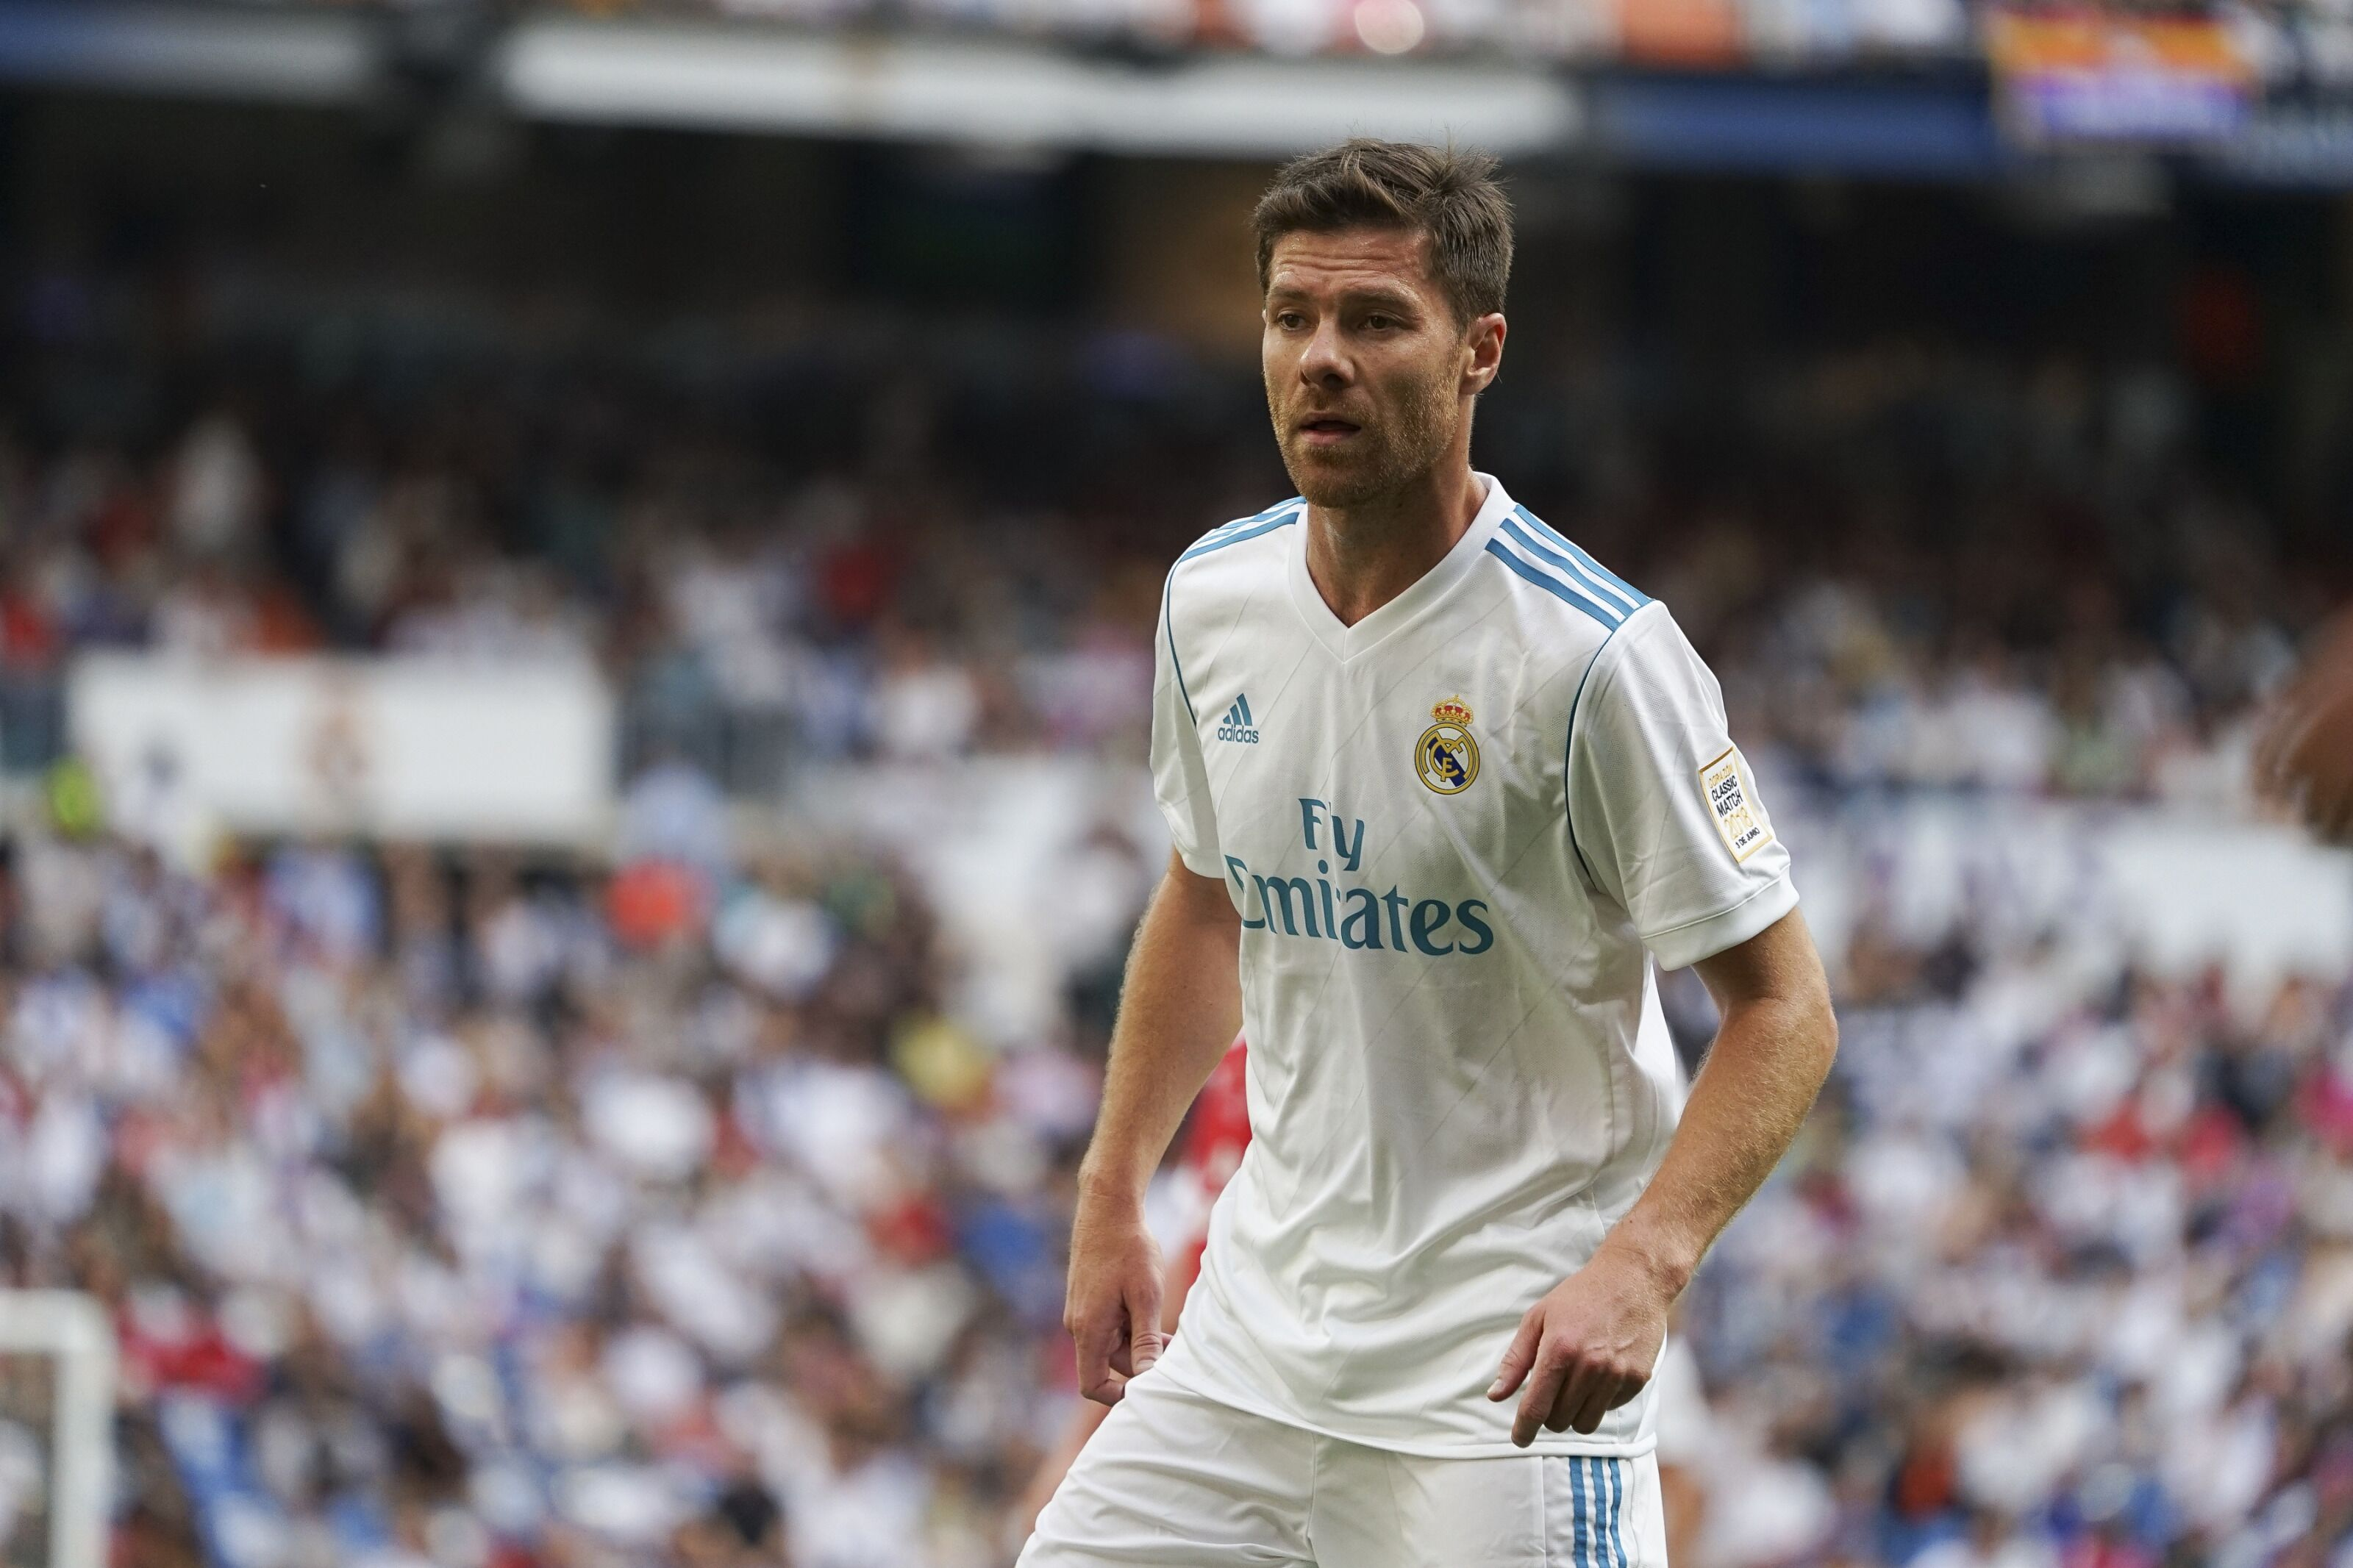 c2671d717c7 Real Madrid s Xabi Alonso impresses as a manager in his first season